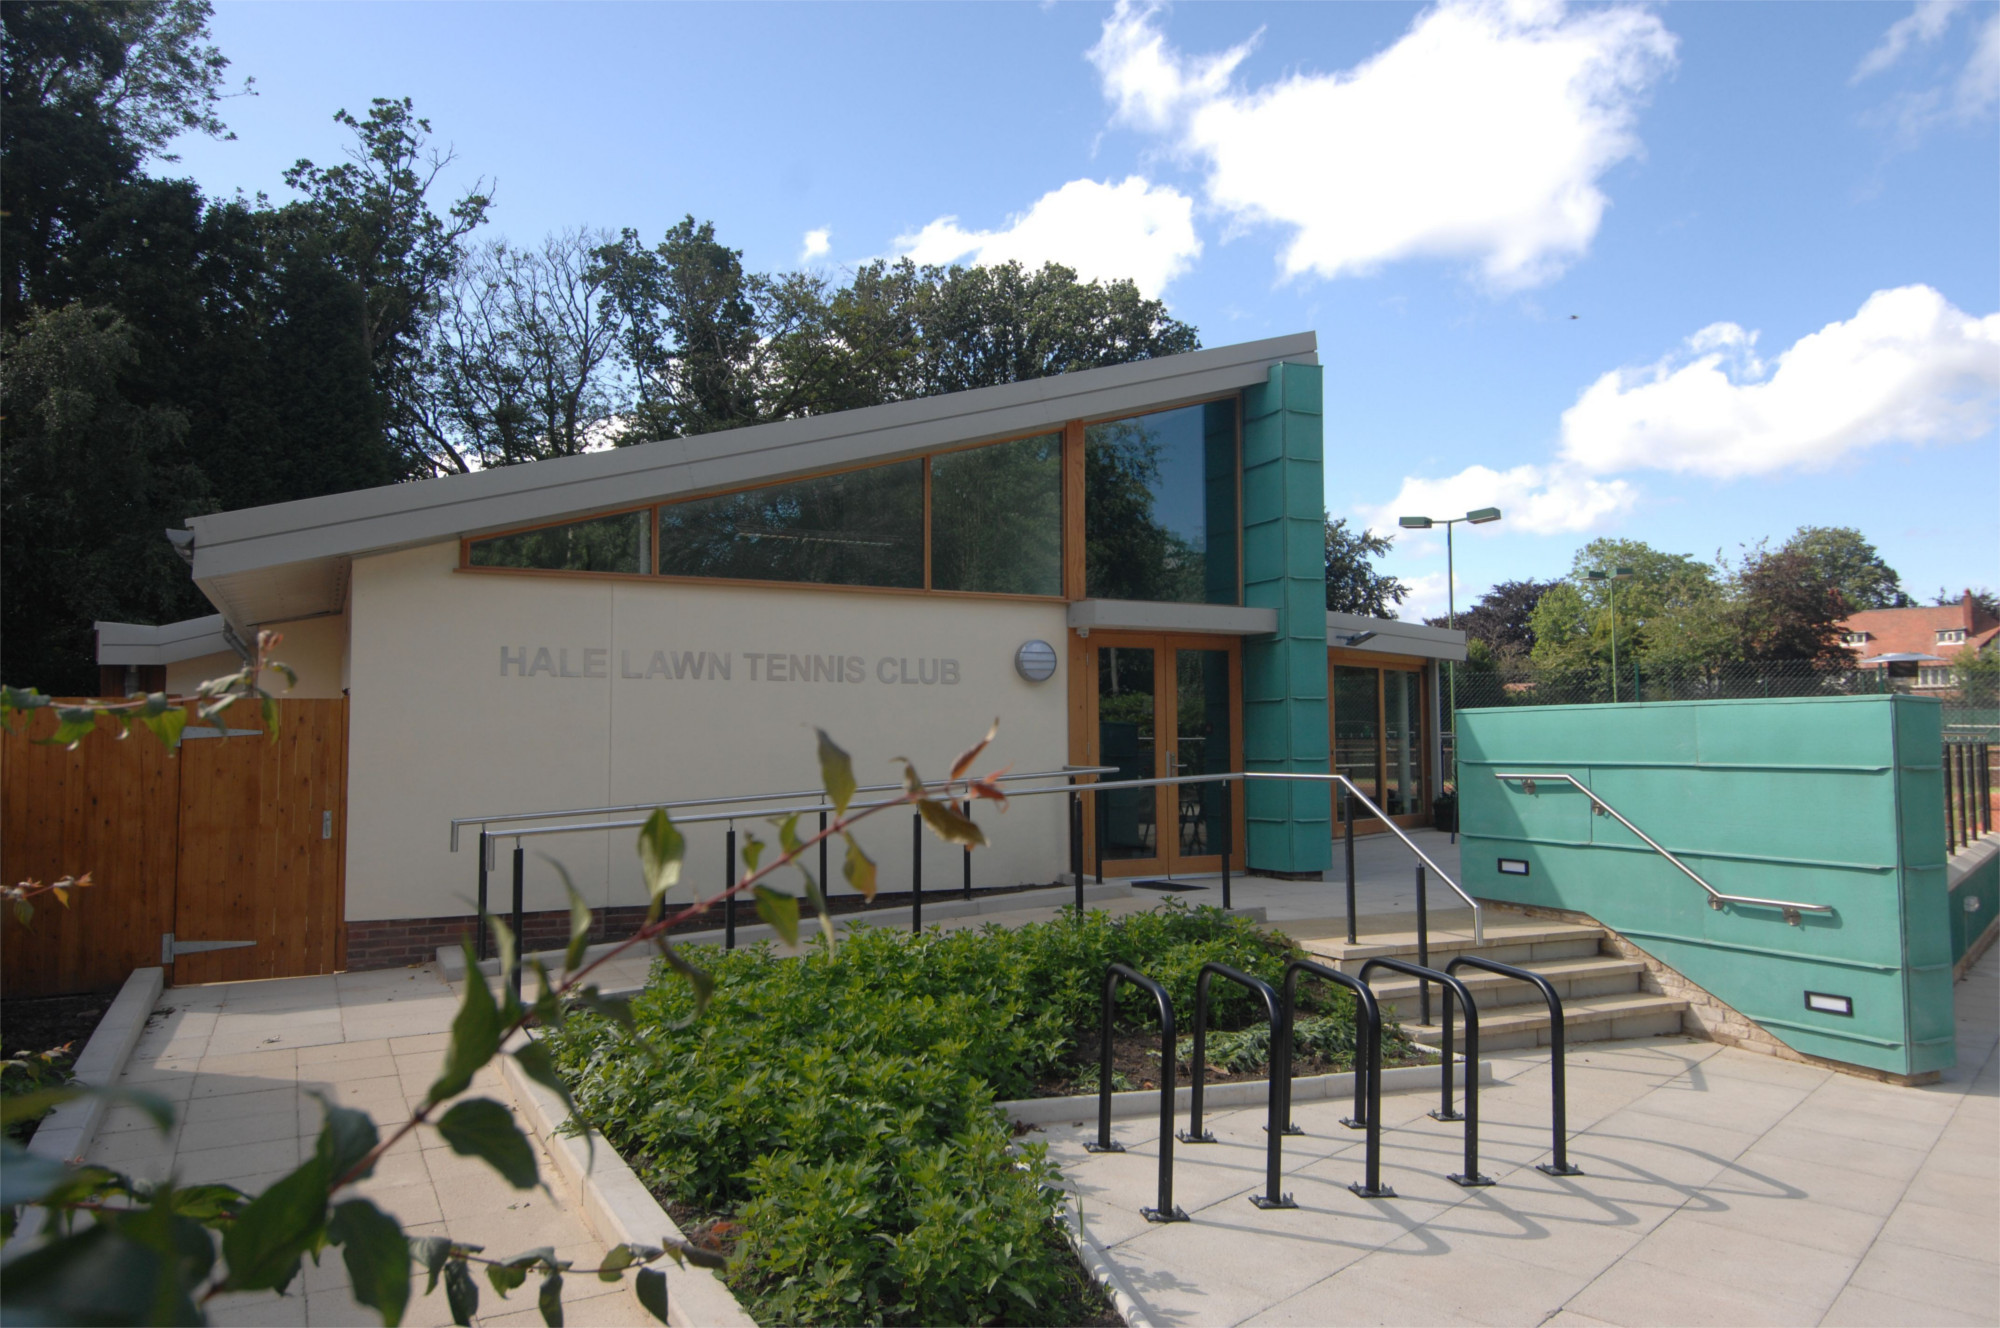 Hale Lawn Tennis CLub - Finlason Partnership Ltd